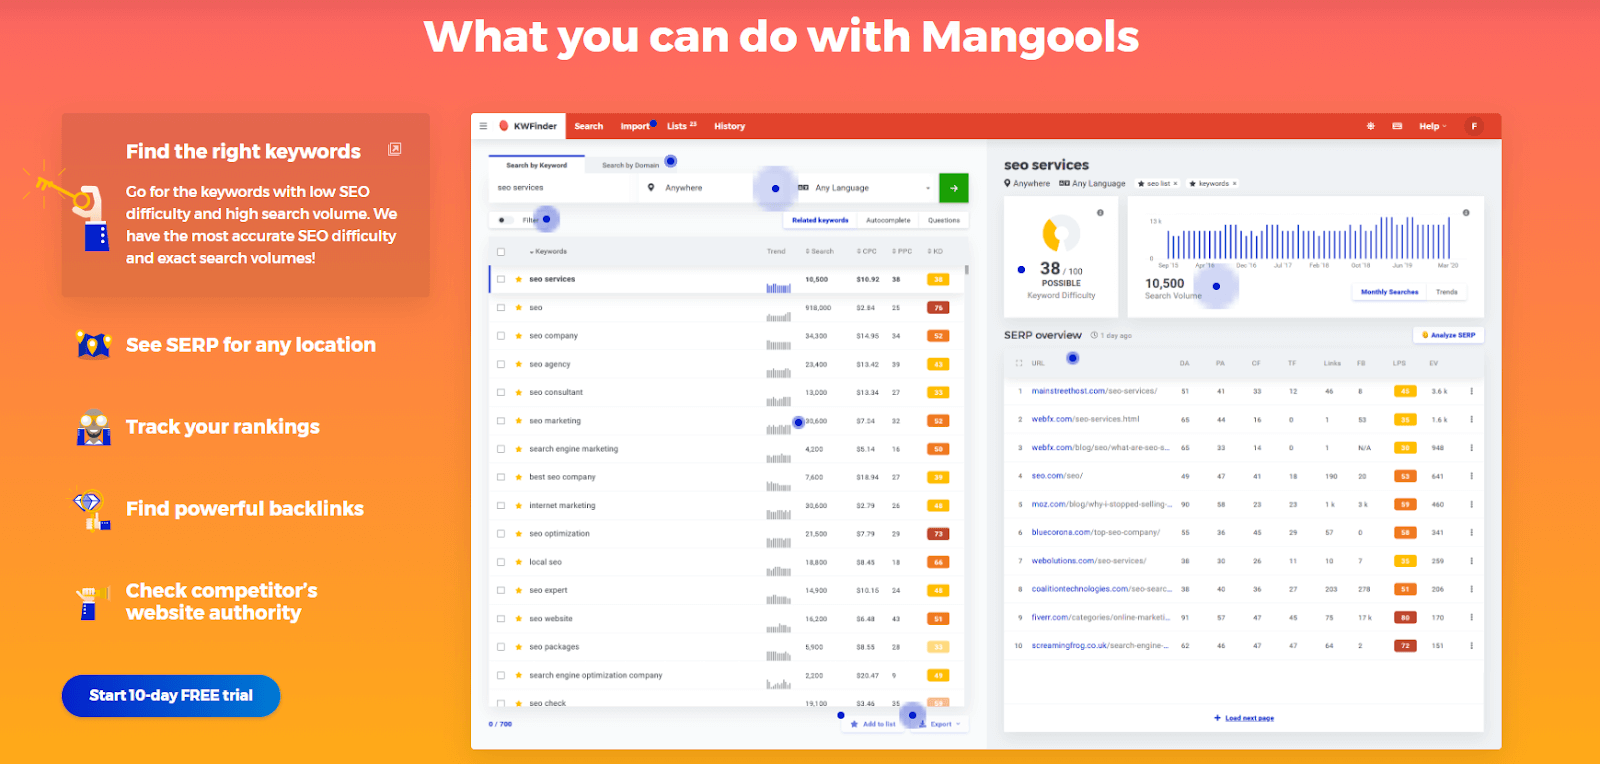 See all the things you can do with Magools, it will help you with all the things regarding SEO.